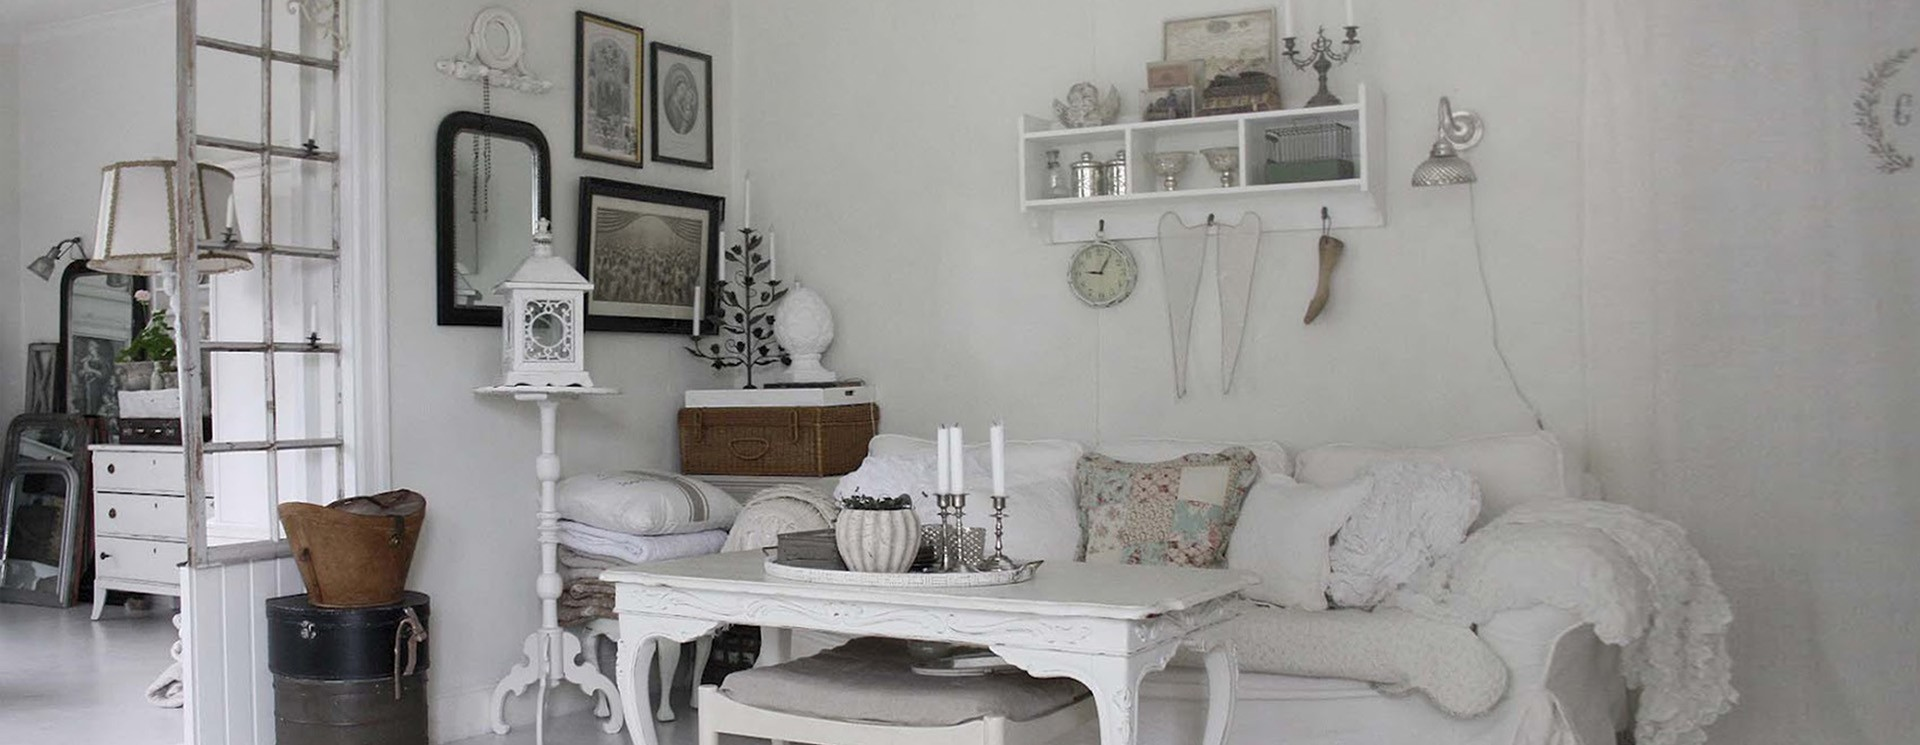 Arredamento in stile shabby chic online su mobilia store for Arredamento shop on line